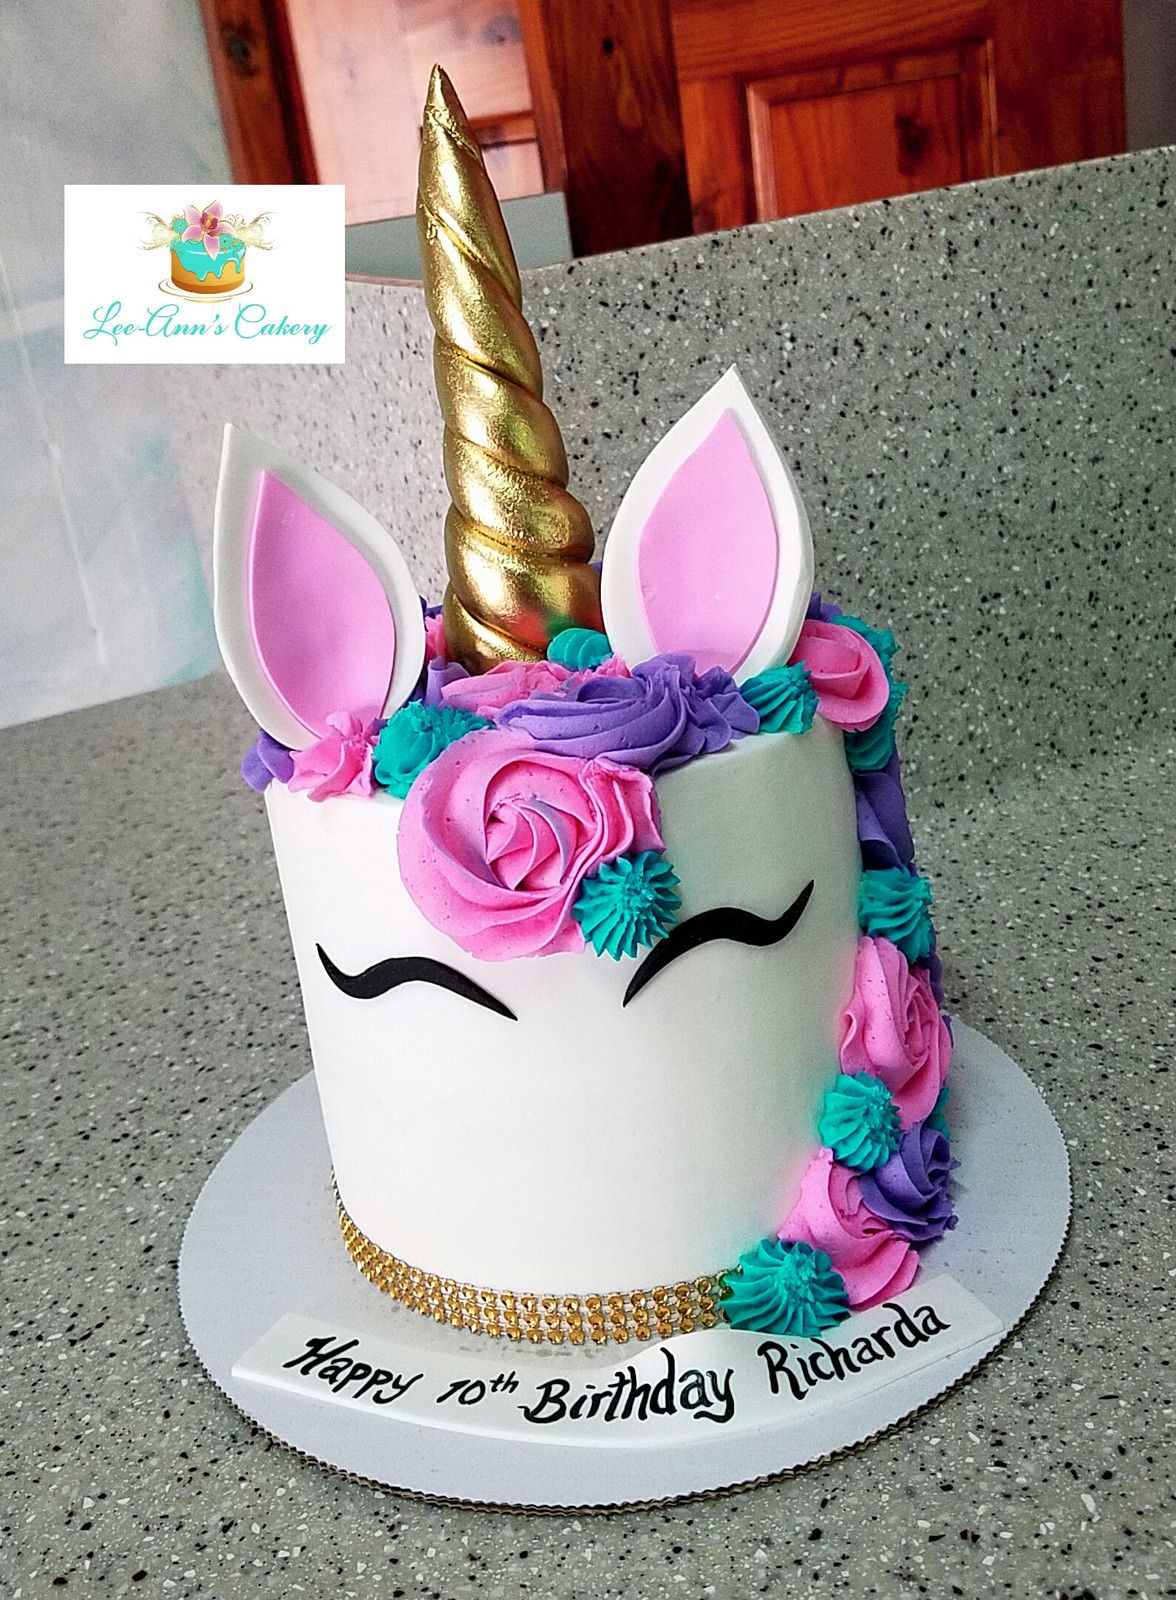 Weddings Cakes Bakery Trinidad And Tobago Lee Anns Cakery